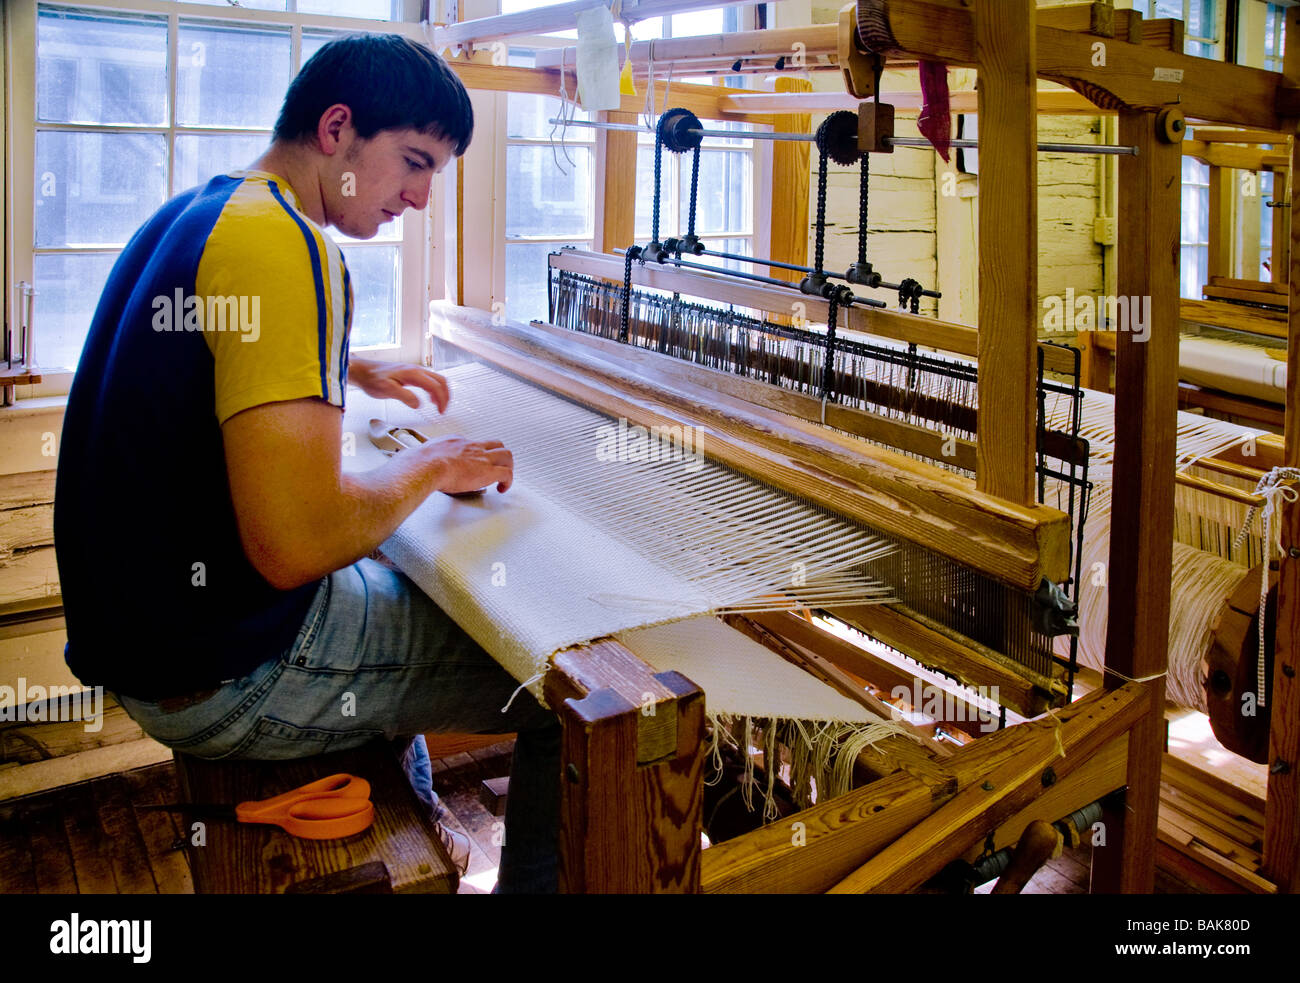 Student weaving at the Berea College Log House Craft Gallery in Berea Kentucky - Stock Image